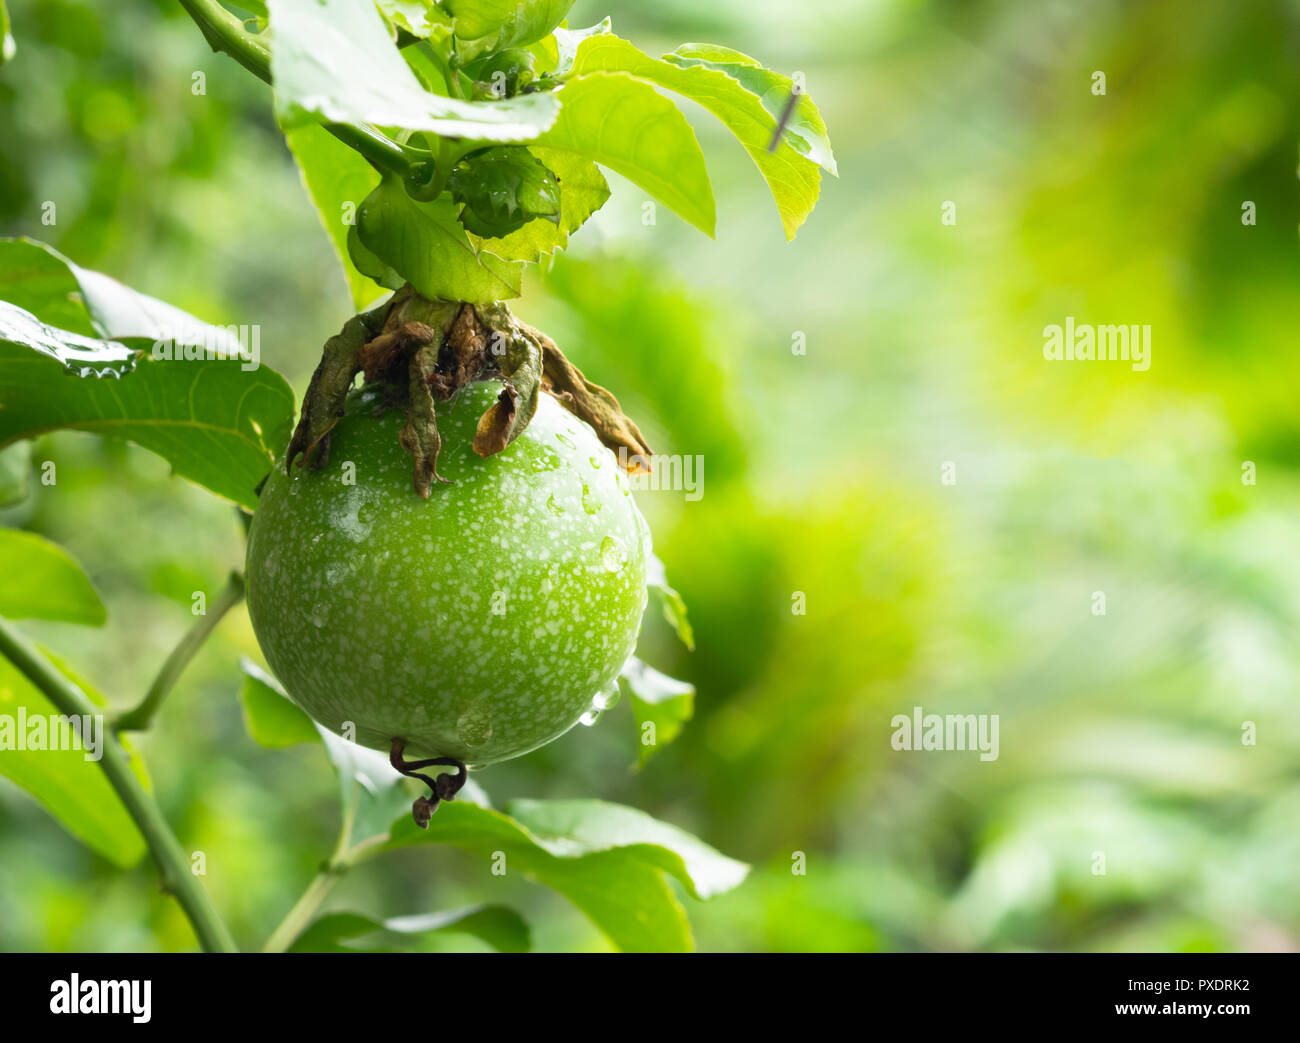 Passiflora Edulis Passionfruit Plant Stock Photos And Passionfruit Plant Stock